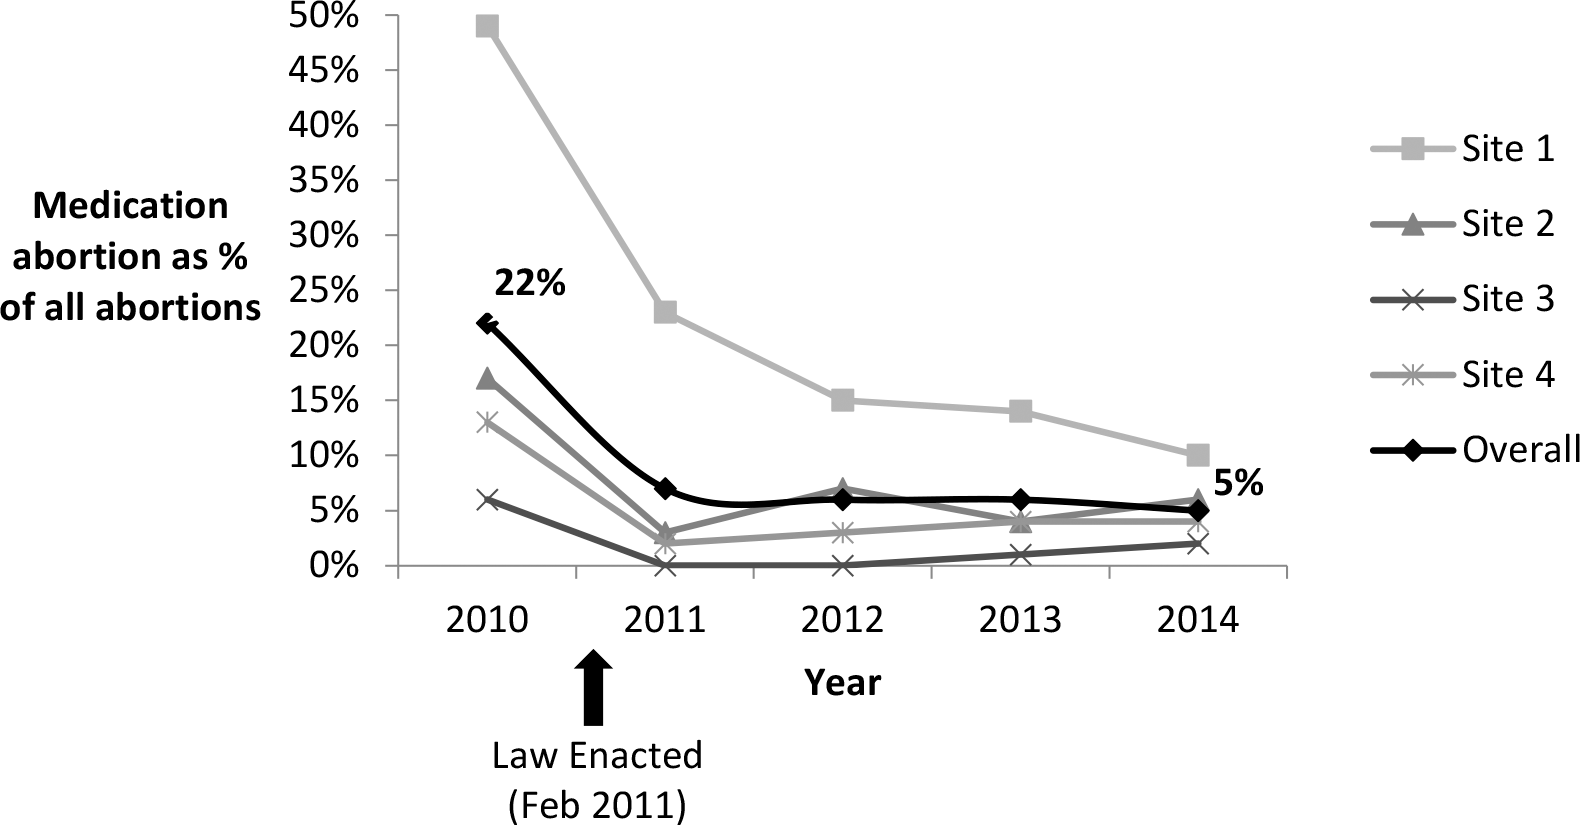 Proportion of abortions that were medication abortions at four Ohio facilities, 2010–2014.